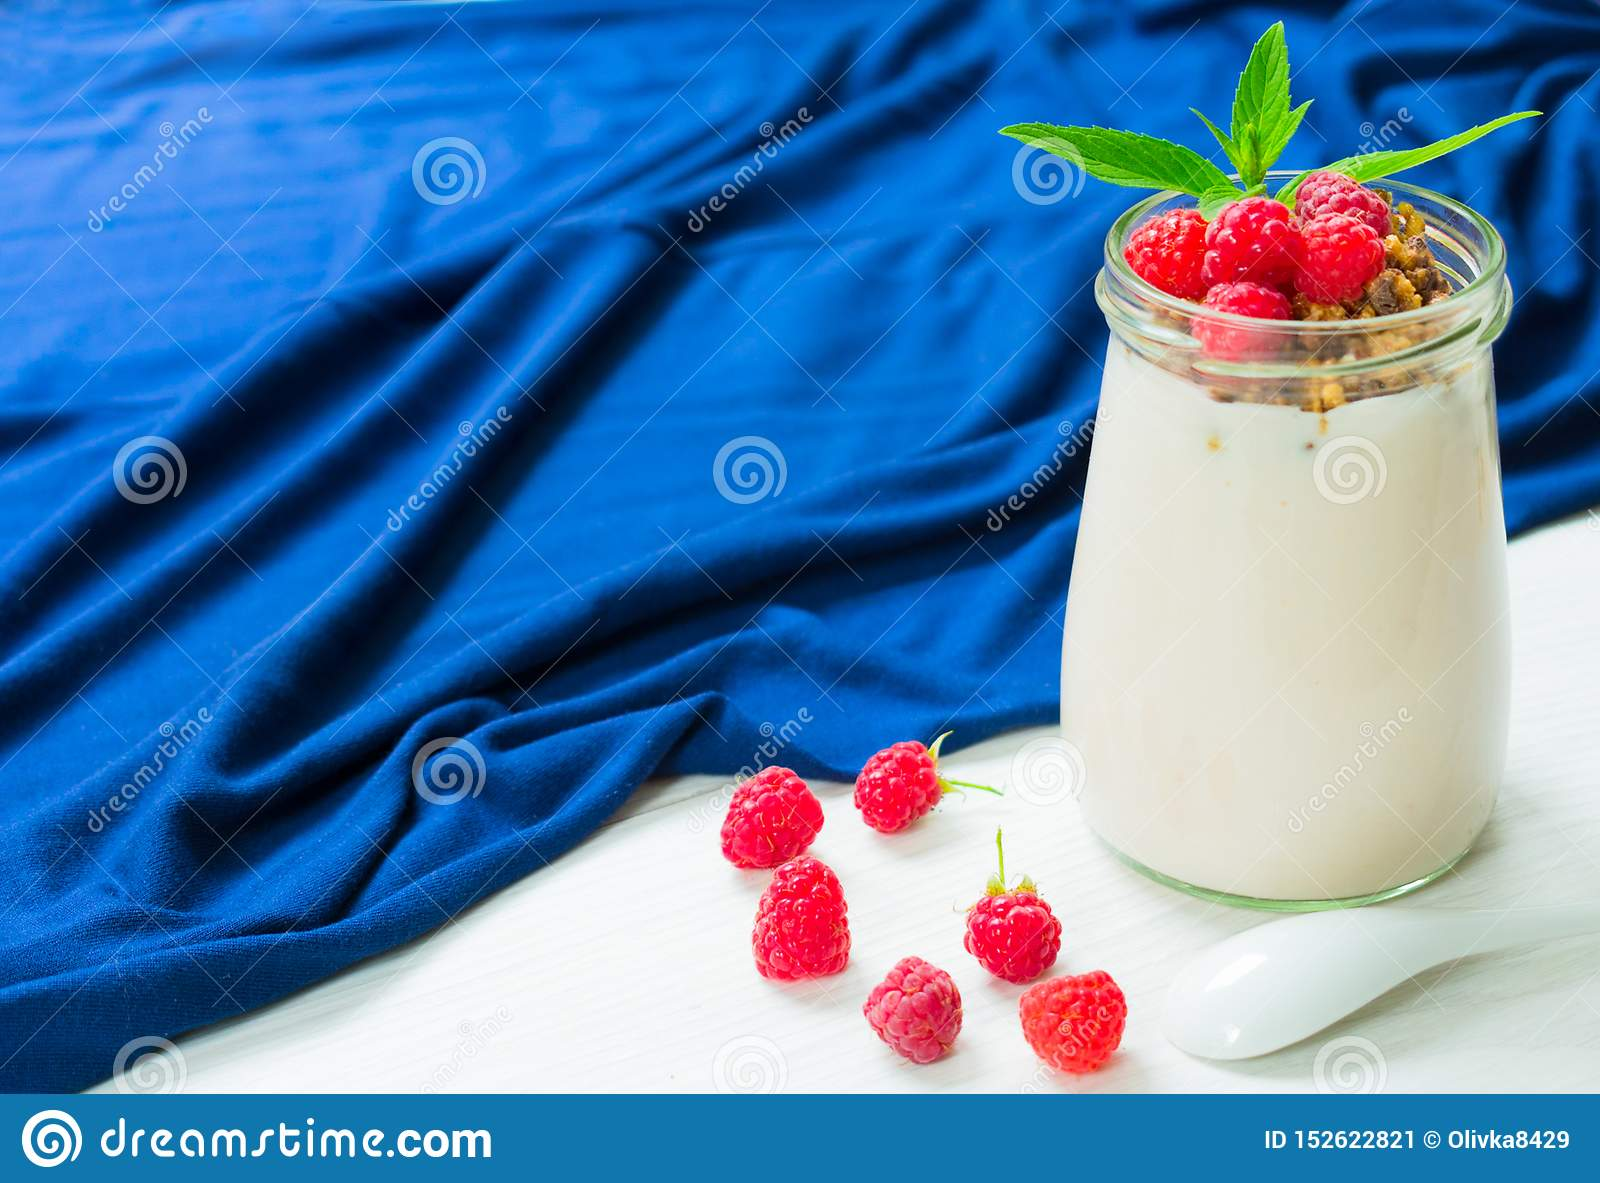 Yogurt with raspberry berries and muesli, decorated with mint leaves, in a glass jar on a white table with a blue tablecloth